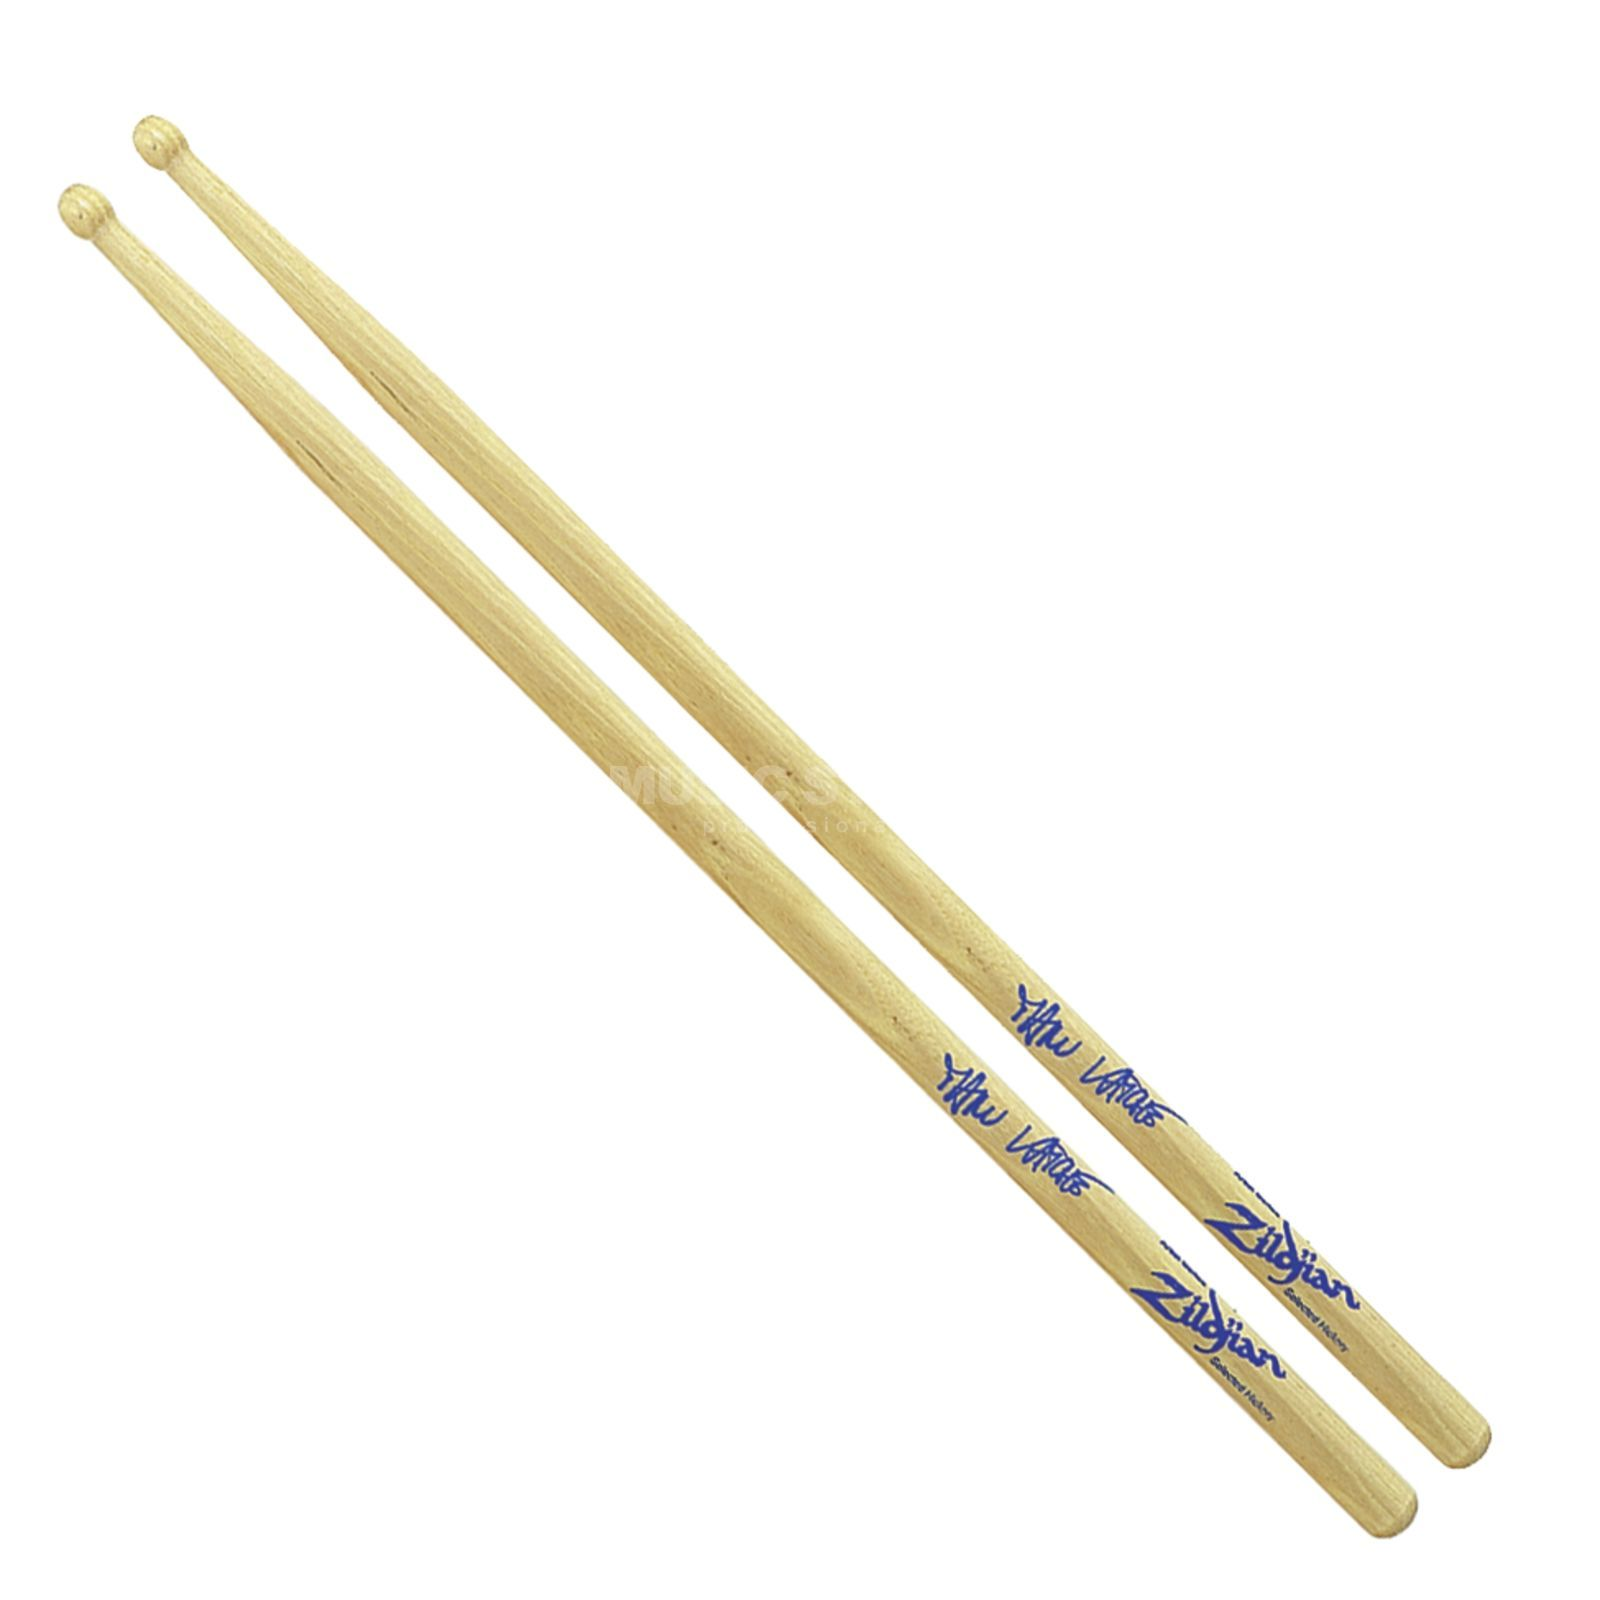 Zildjian Manu Katche Hickory Sticks Natural Finish, Wood Tip Produktbild